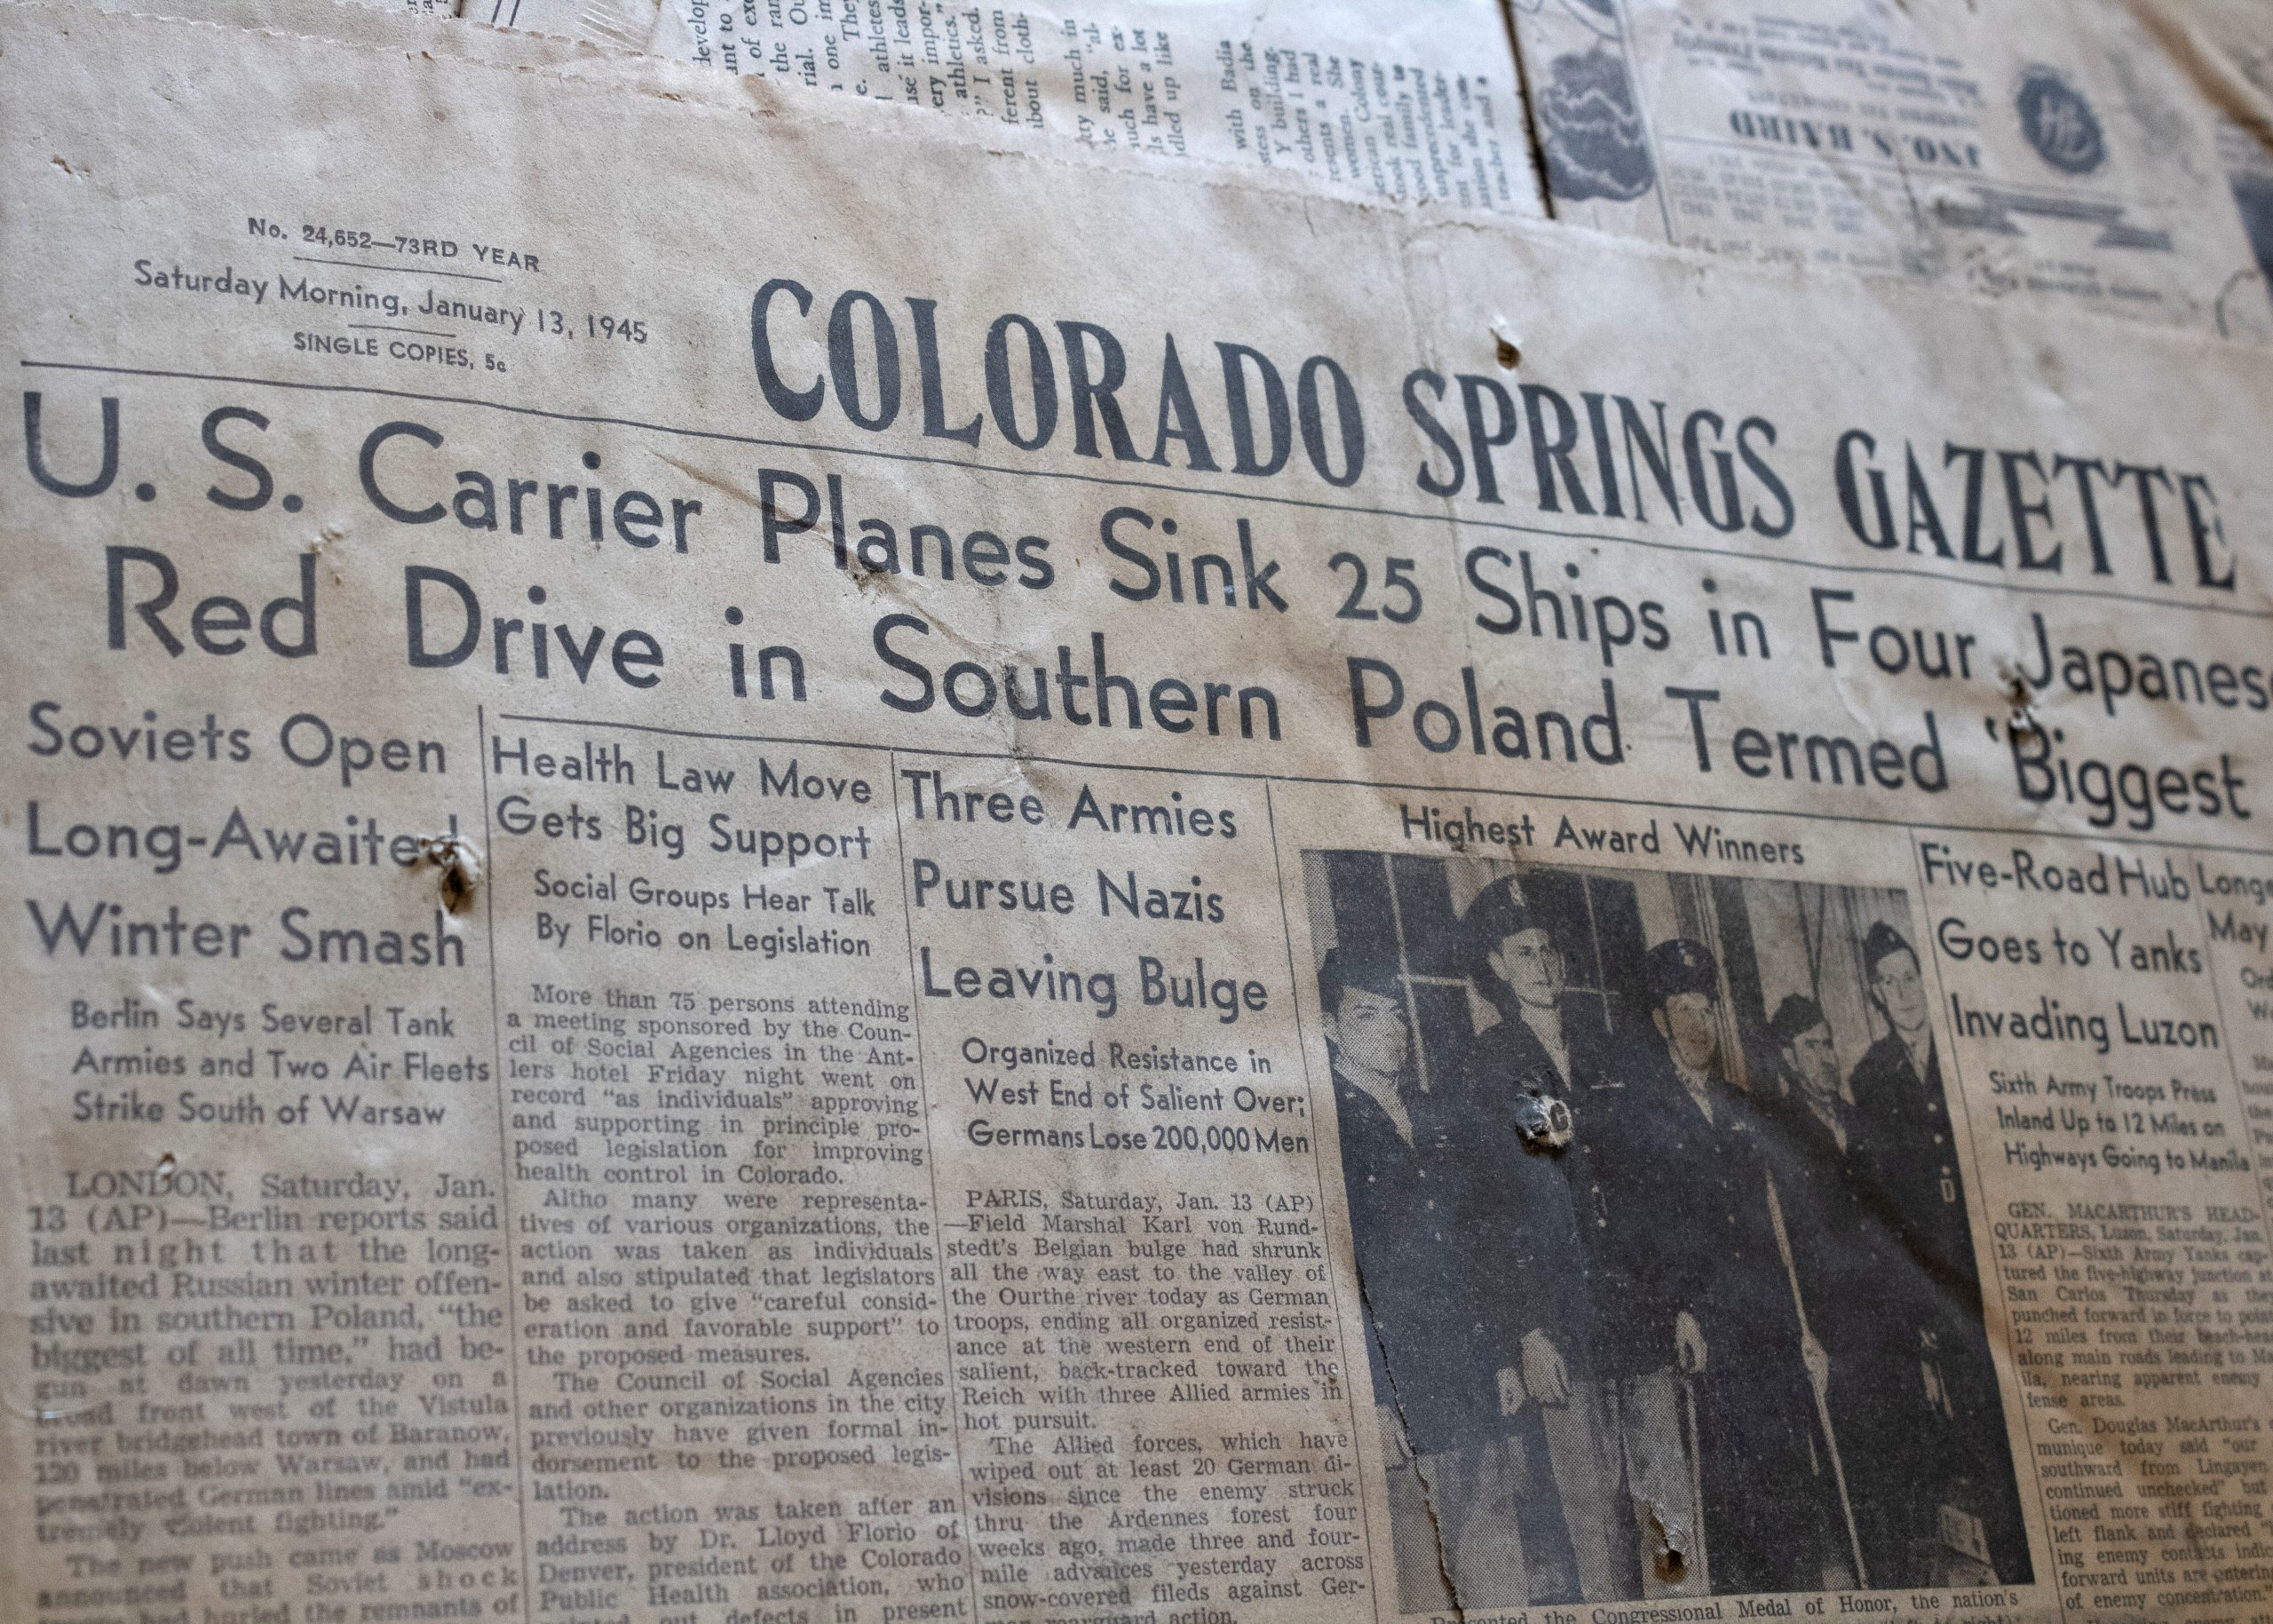 The front page of the Colorado Springs Gazette published January 13, 1945.